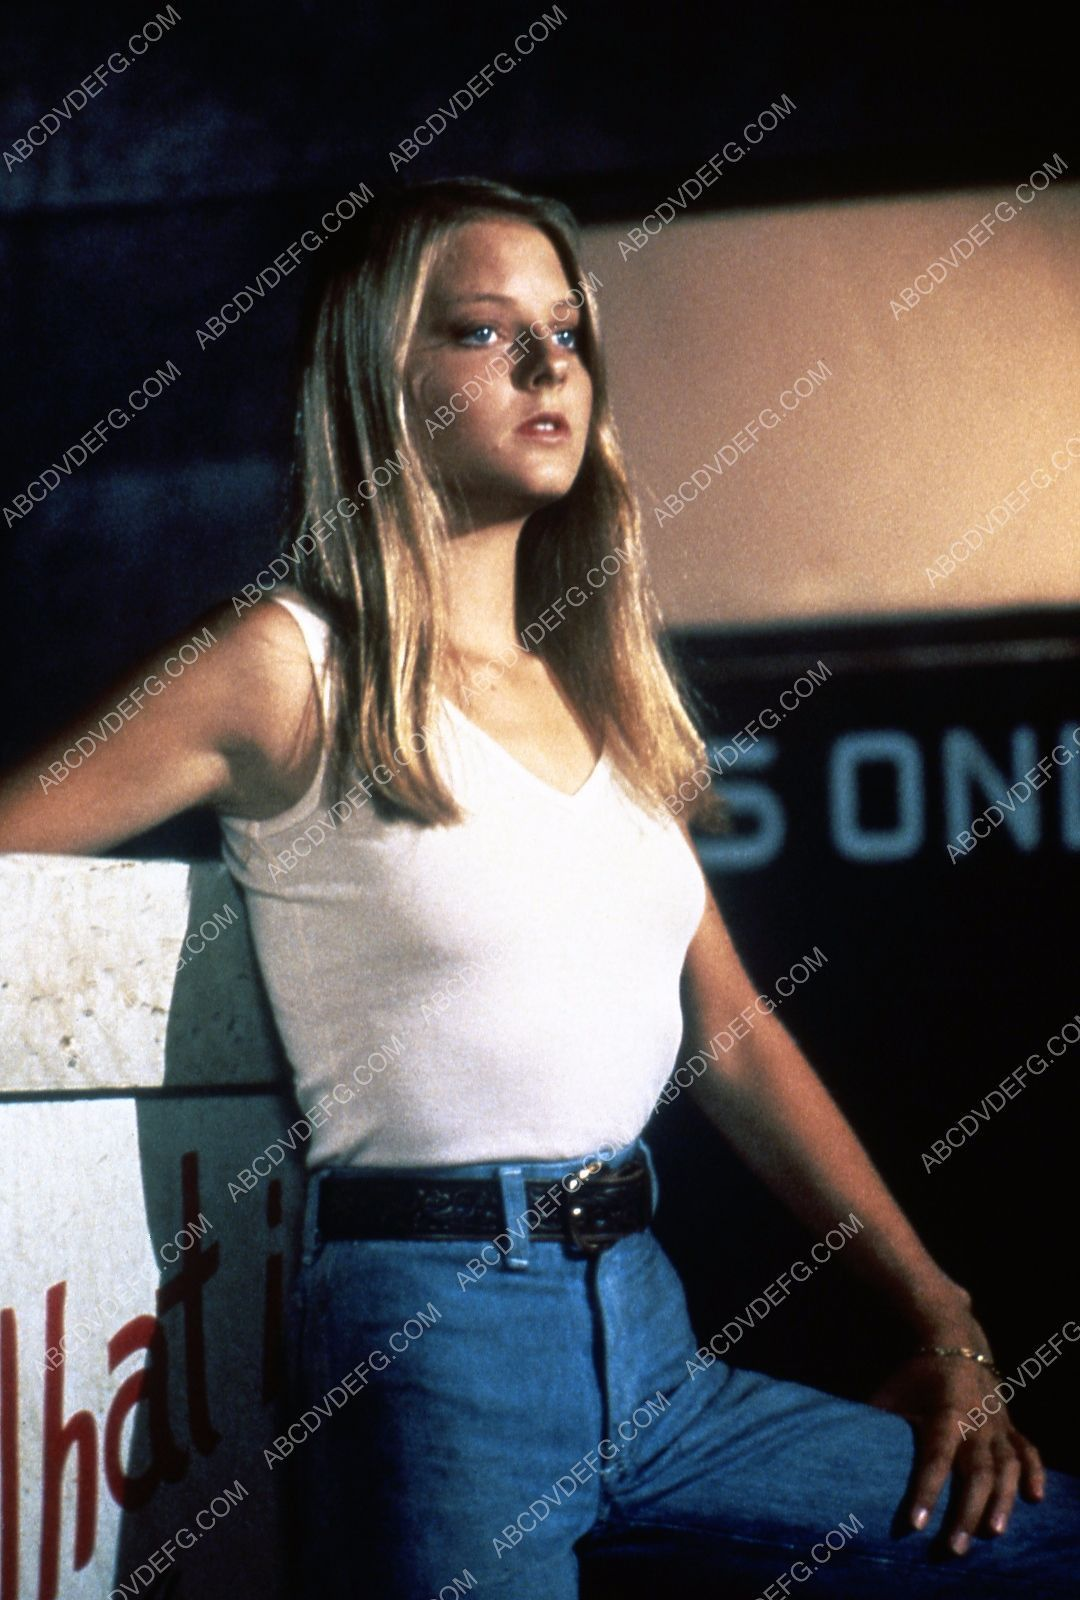 jodie foster film carny i think 35m 4194 hollywood pinterest colour images jodie foster. Black Bedroom Furniture Sets. Home Design Ideas